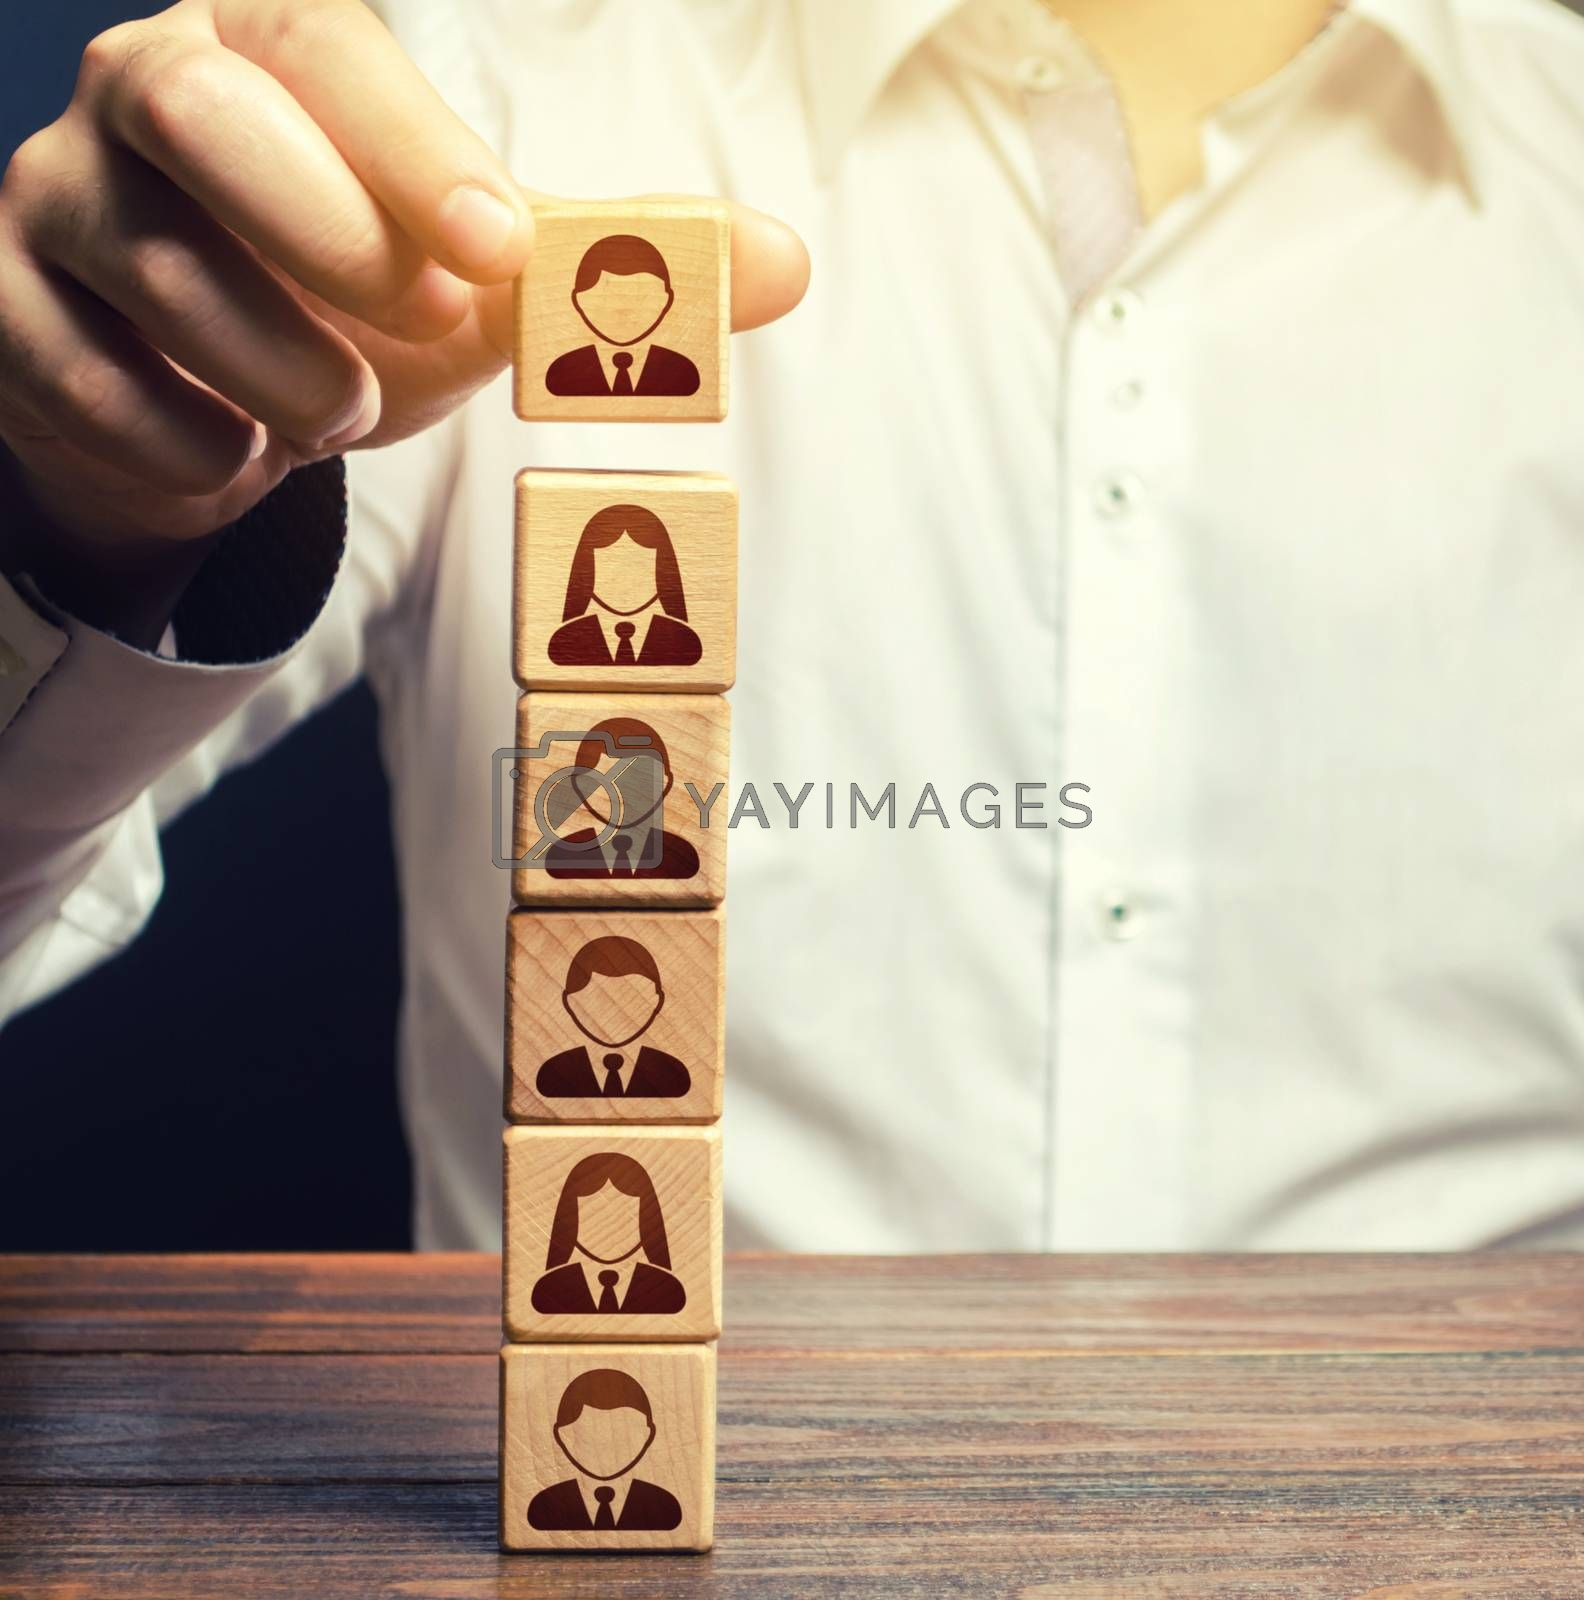 Business leader builds a people block tower. Definition of people in a hierarchical system. Meritocracy. Company organization. Hiring, recruiting workers. Leadership skills, team personnel management.